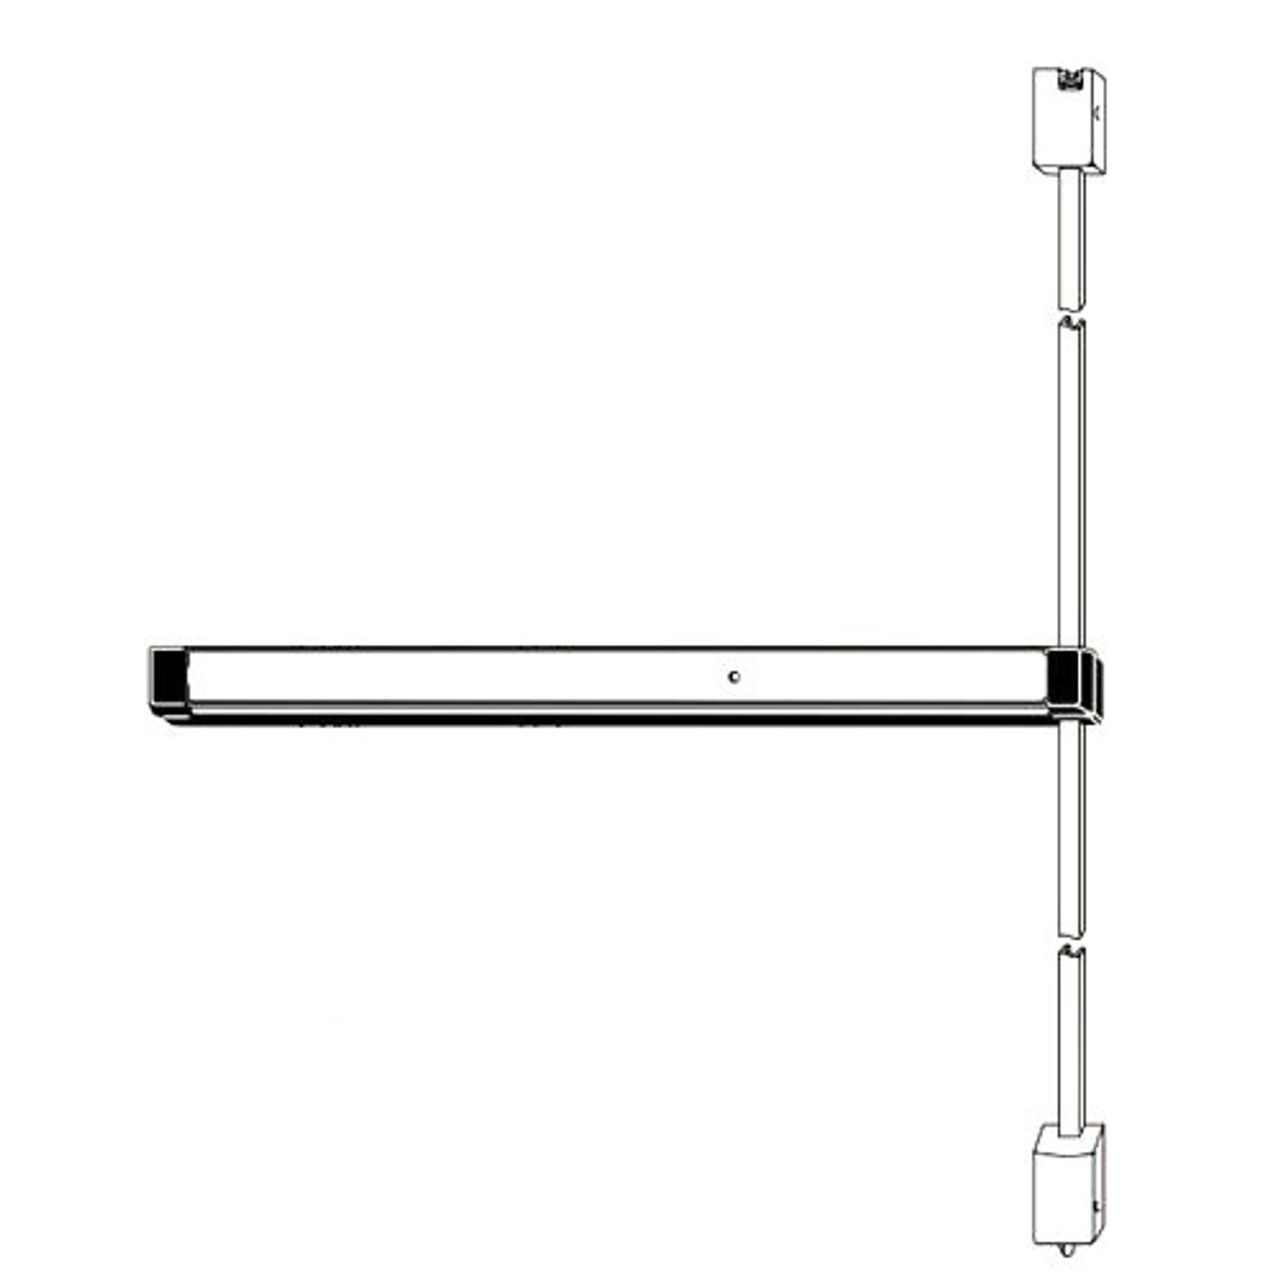 Adams Rite Narrow Stile Surface Vertical Rod Exit Device